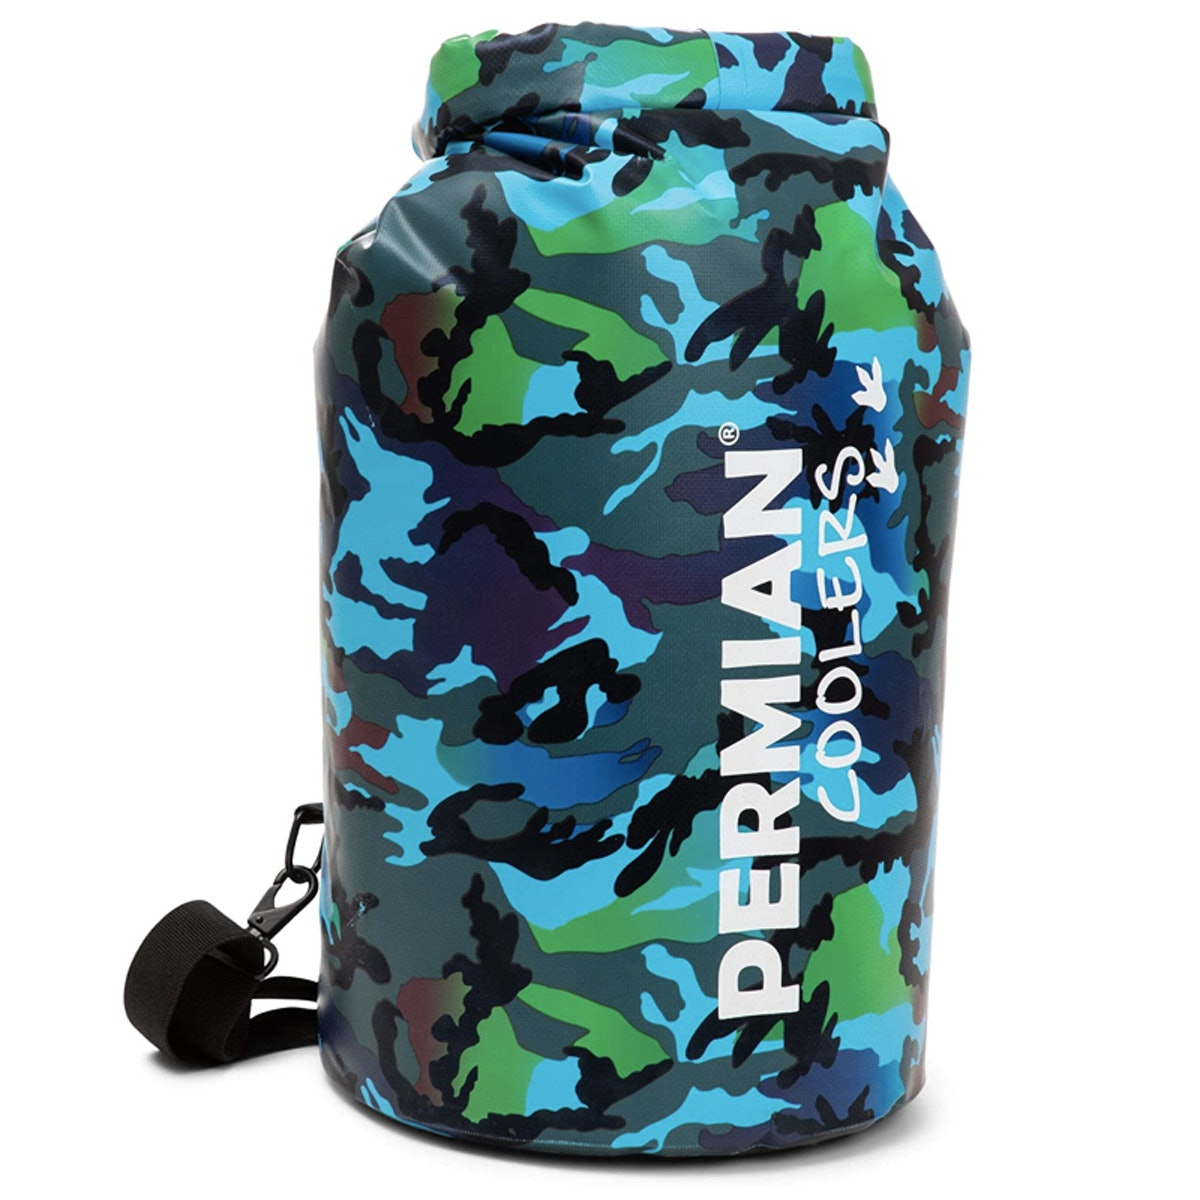 Permian Coolers Portable Insulated Floating Cooler Backpack